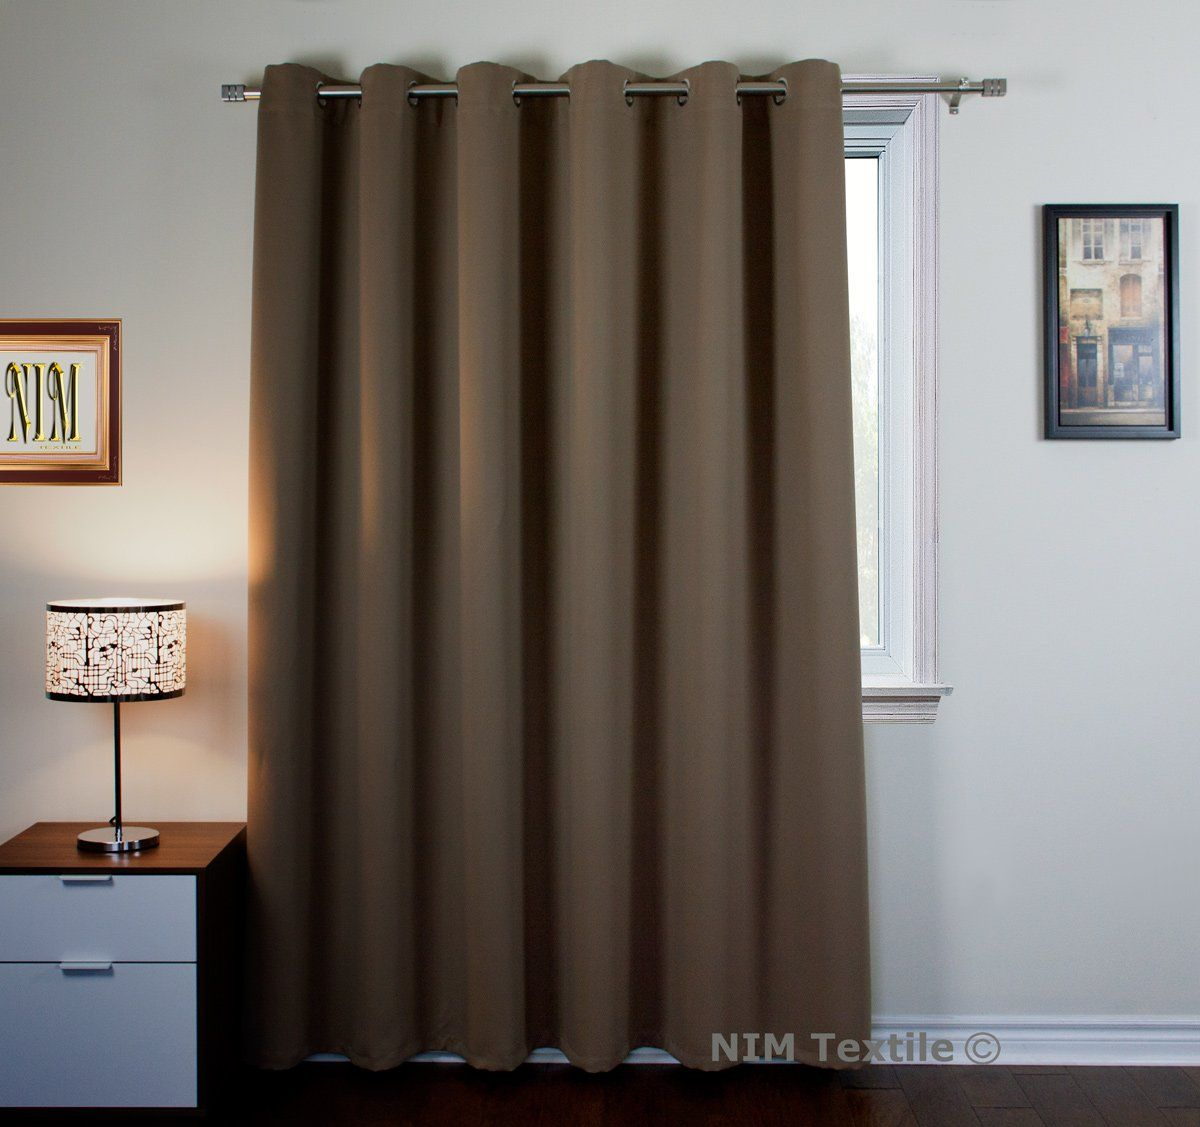 Nim Textile Grommet Curtains Thermal Insulated Blackout Drapes 95 W X 84l 1panel Mocha Sofiter Colle Curtains Custom Drapes Thermal Insulated Blackout Curtains